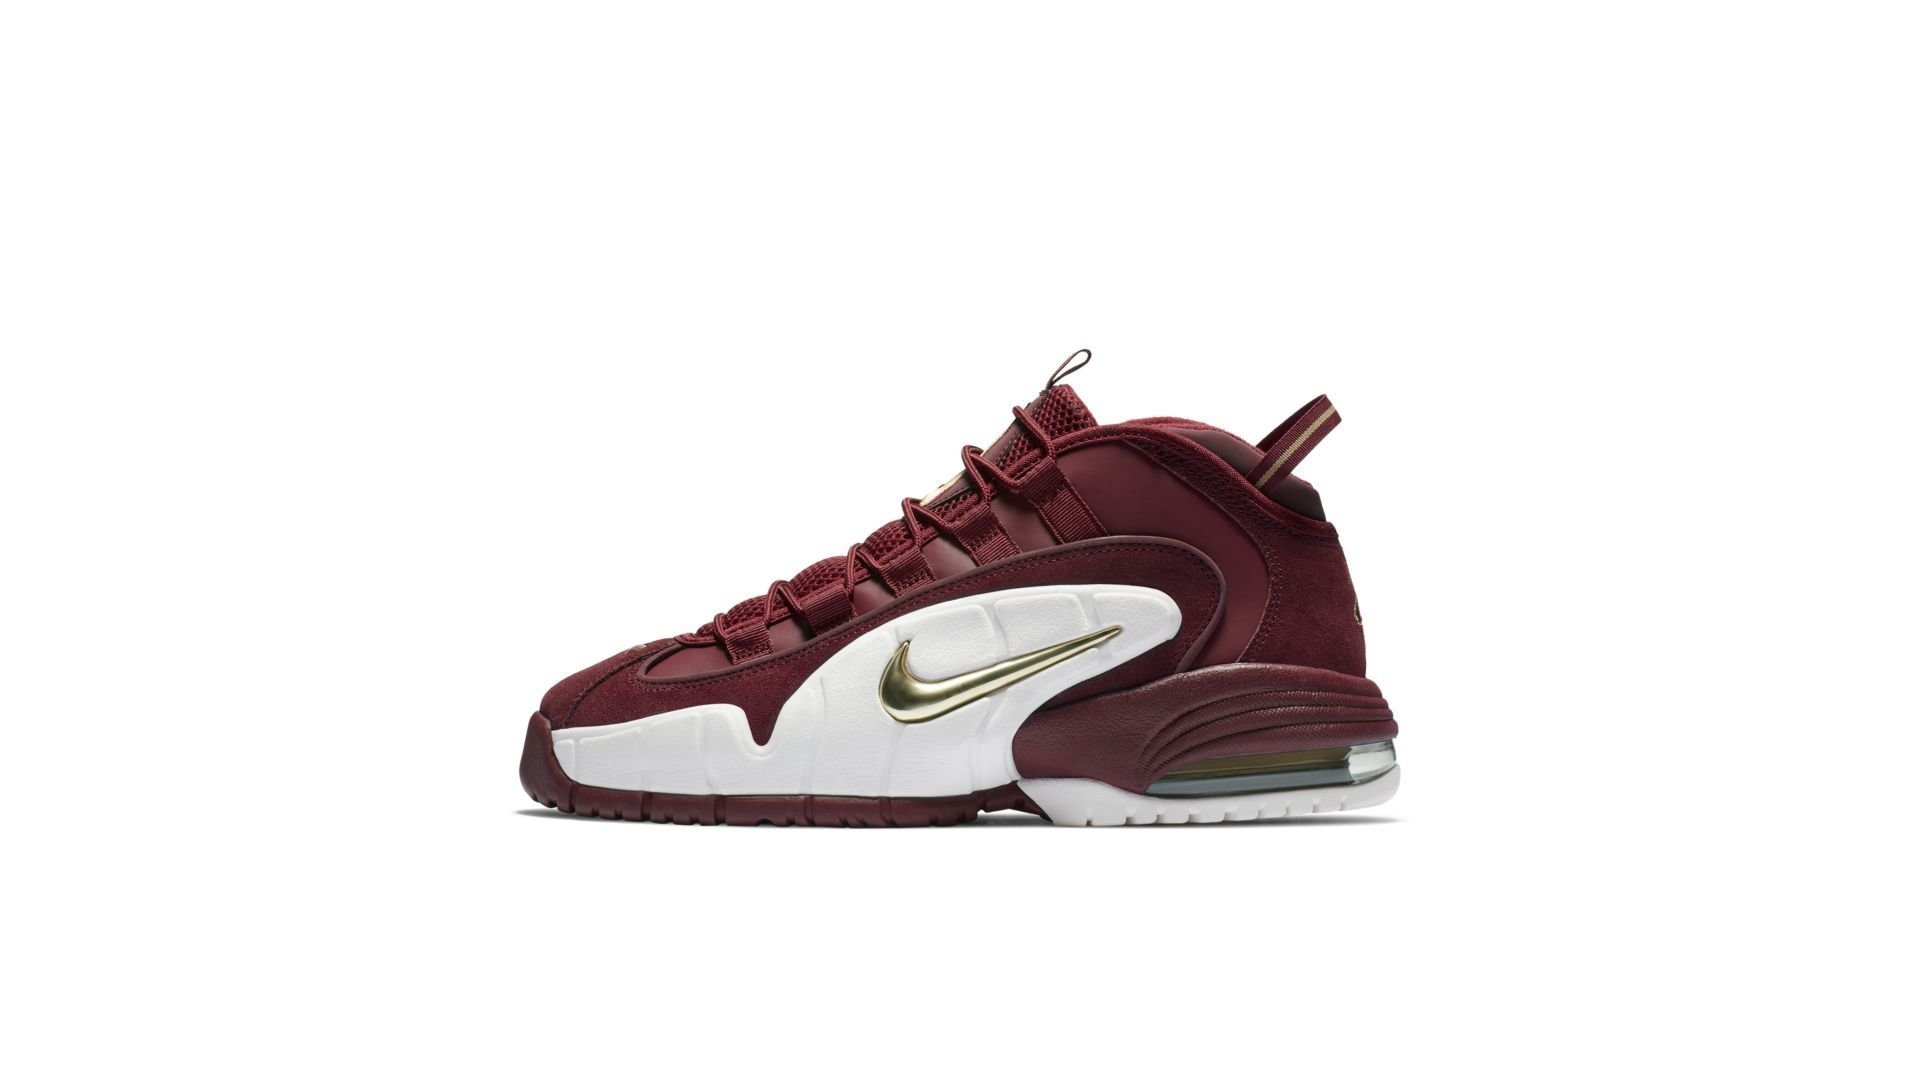 Nike Air Max Penny House Party (685153-601)